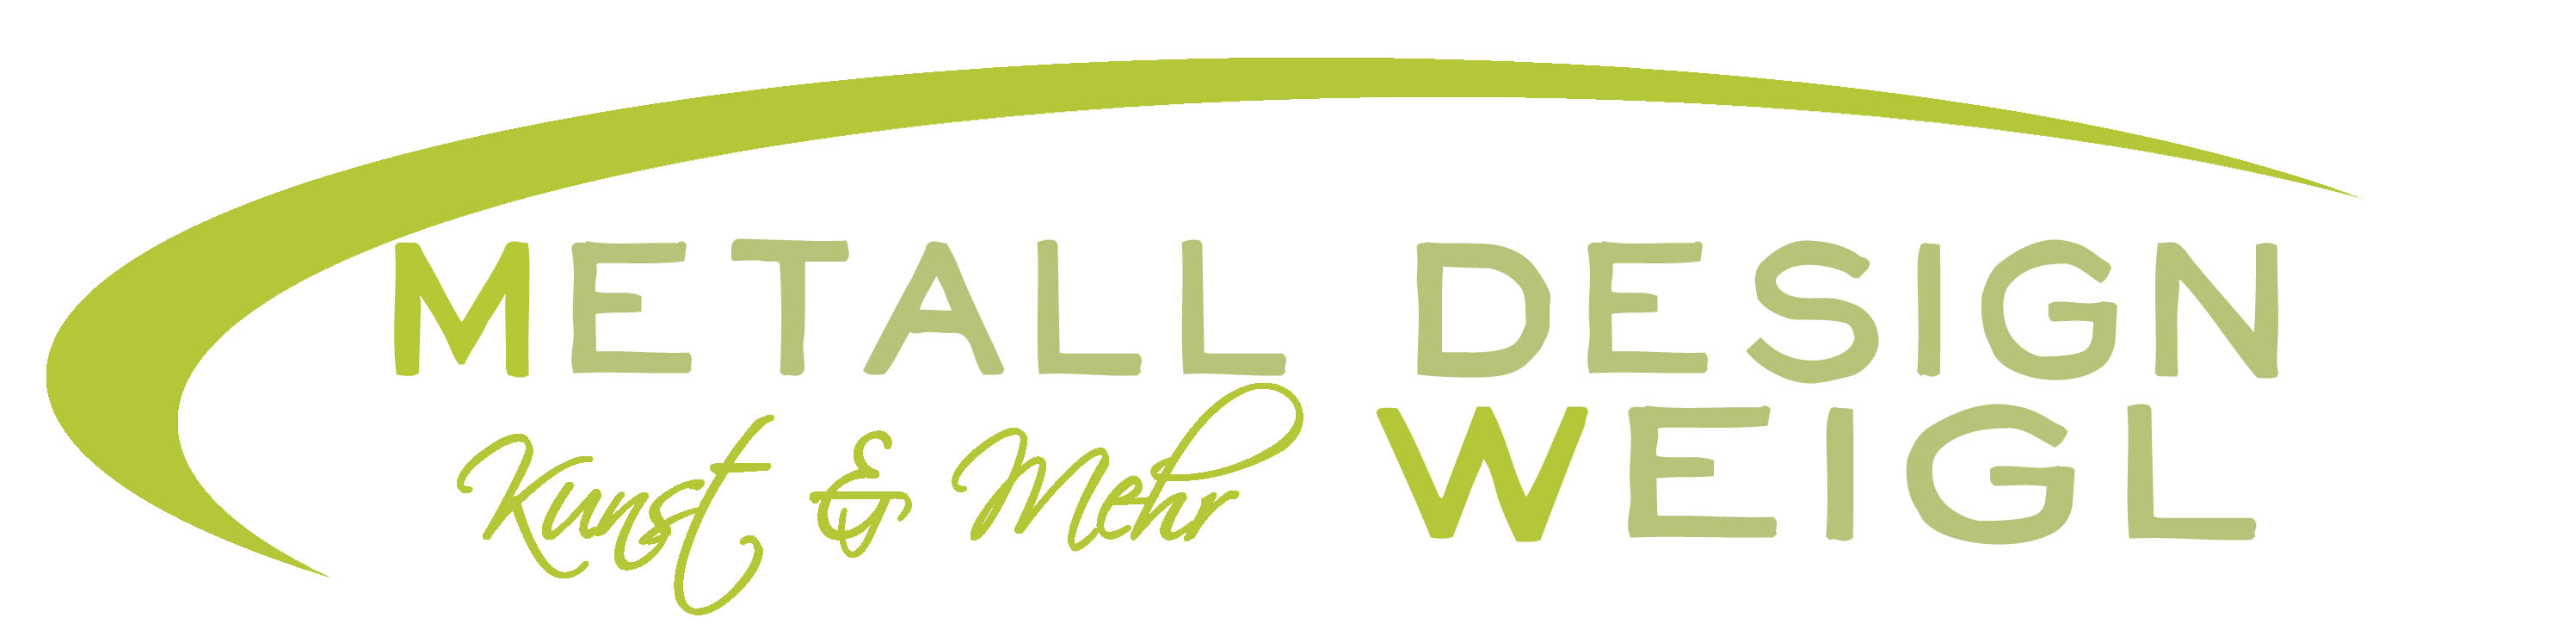 Metalldesign Weigl Logo